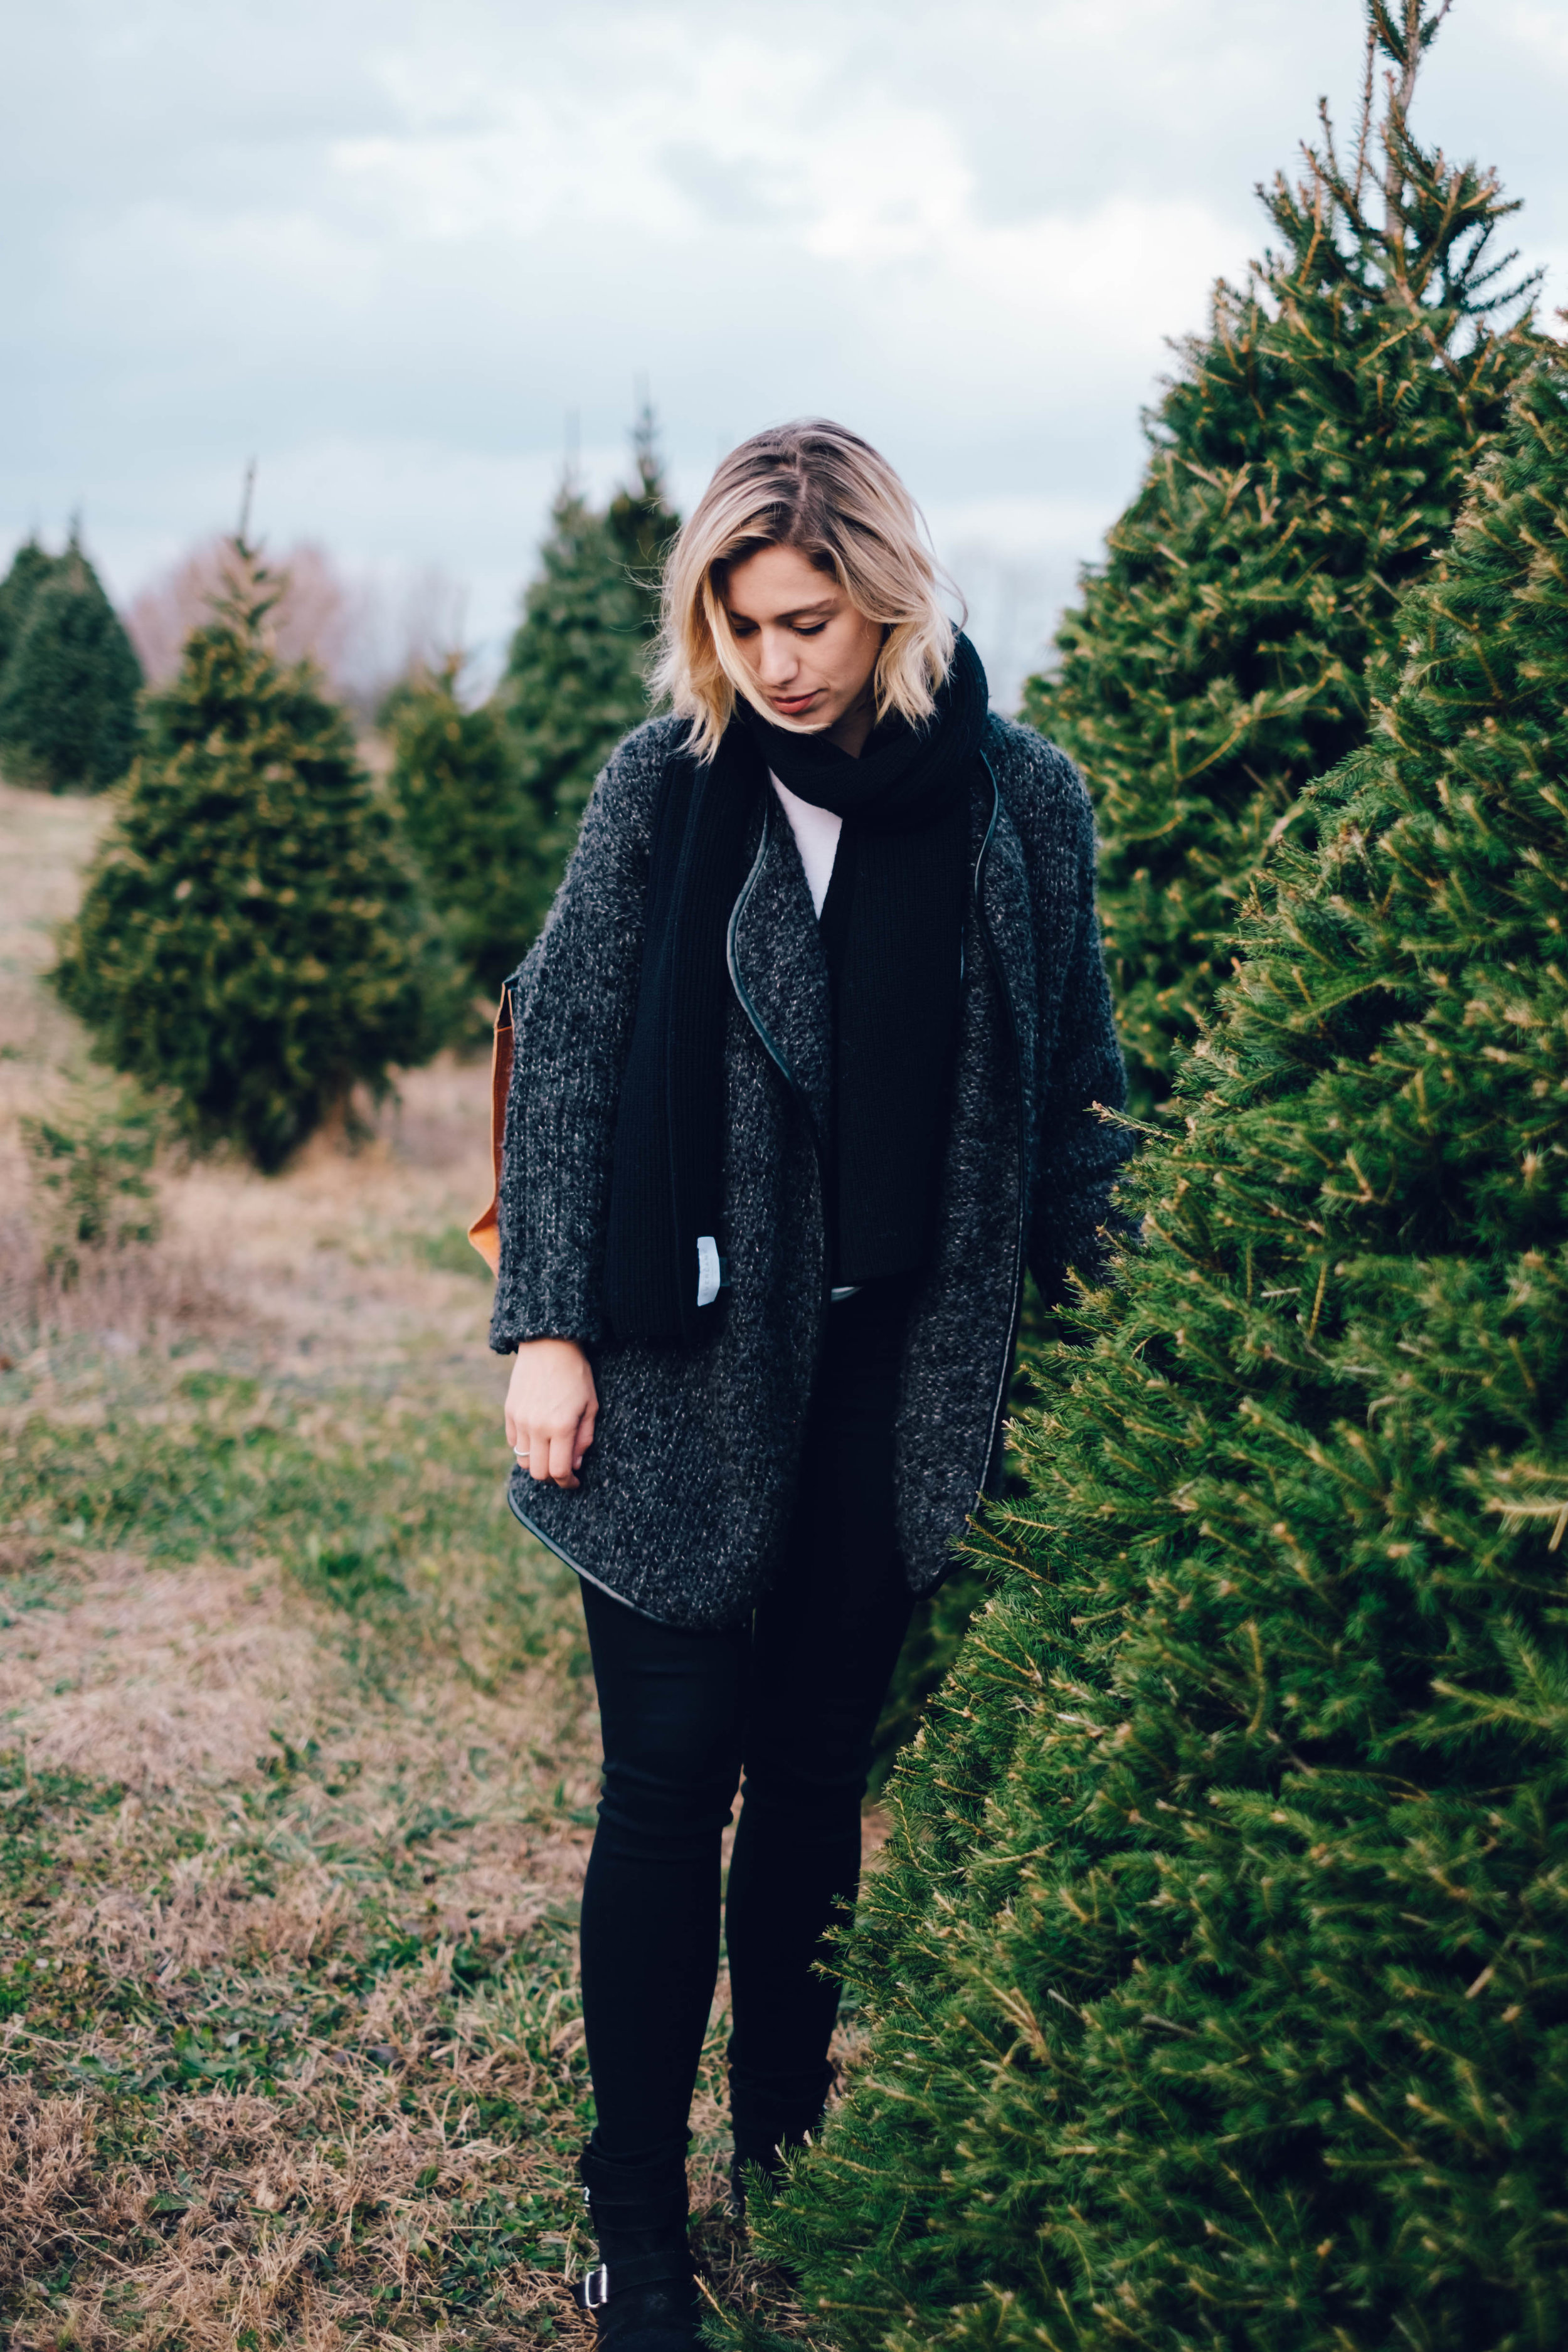 Christmas-Tree-Farm-Outfit-13.jpg